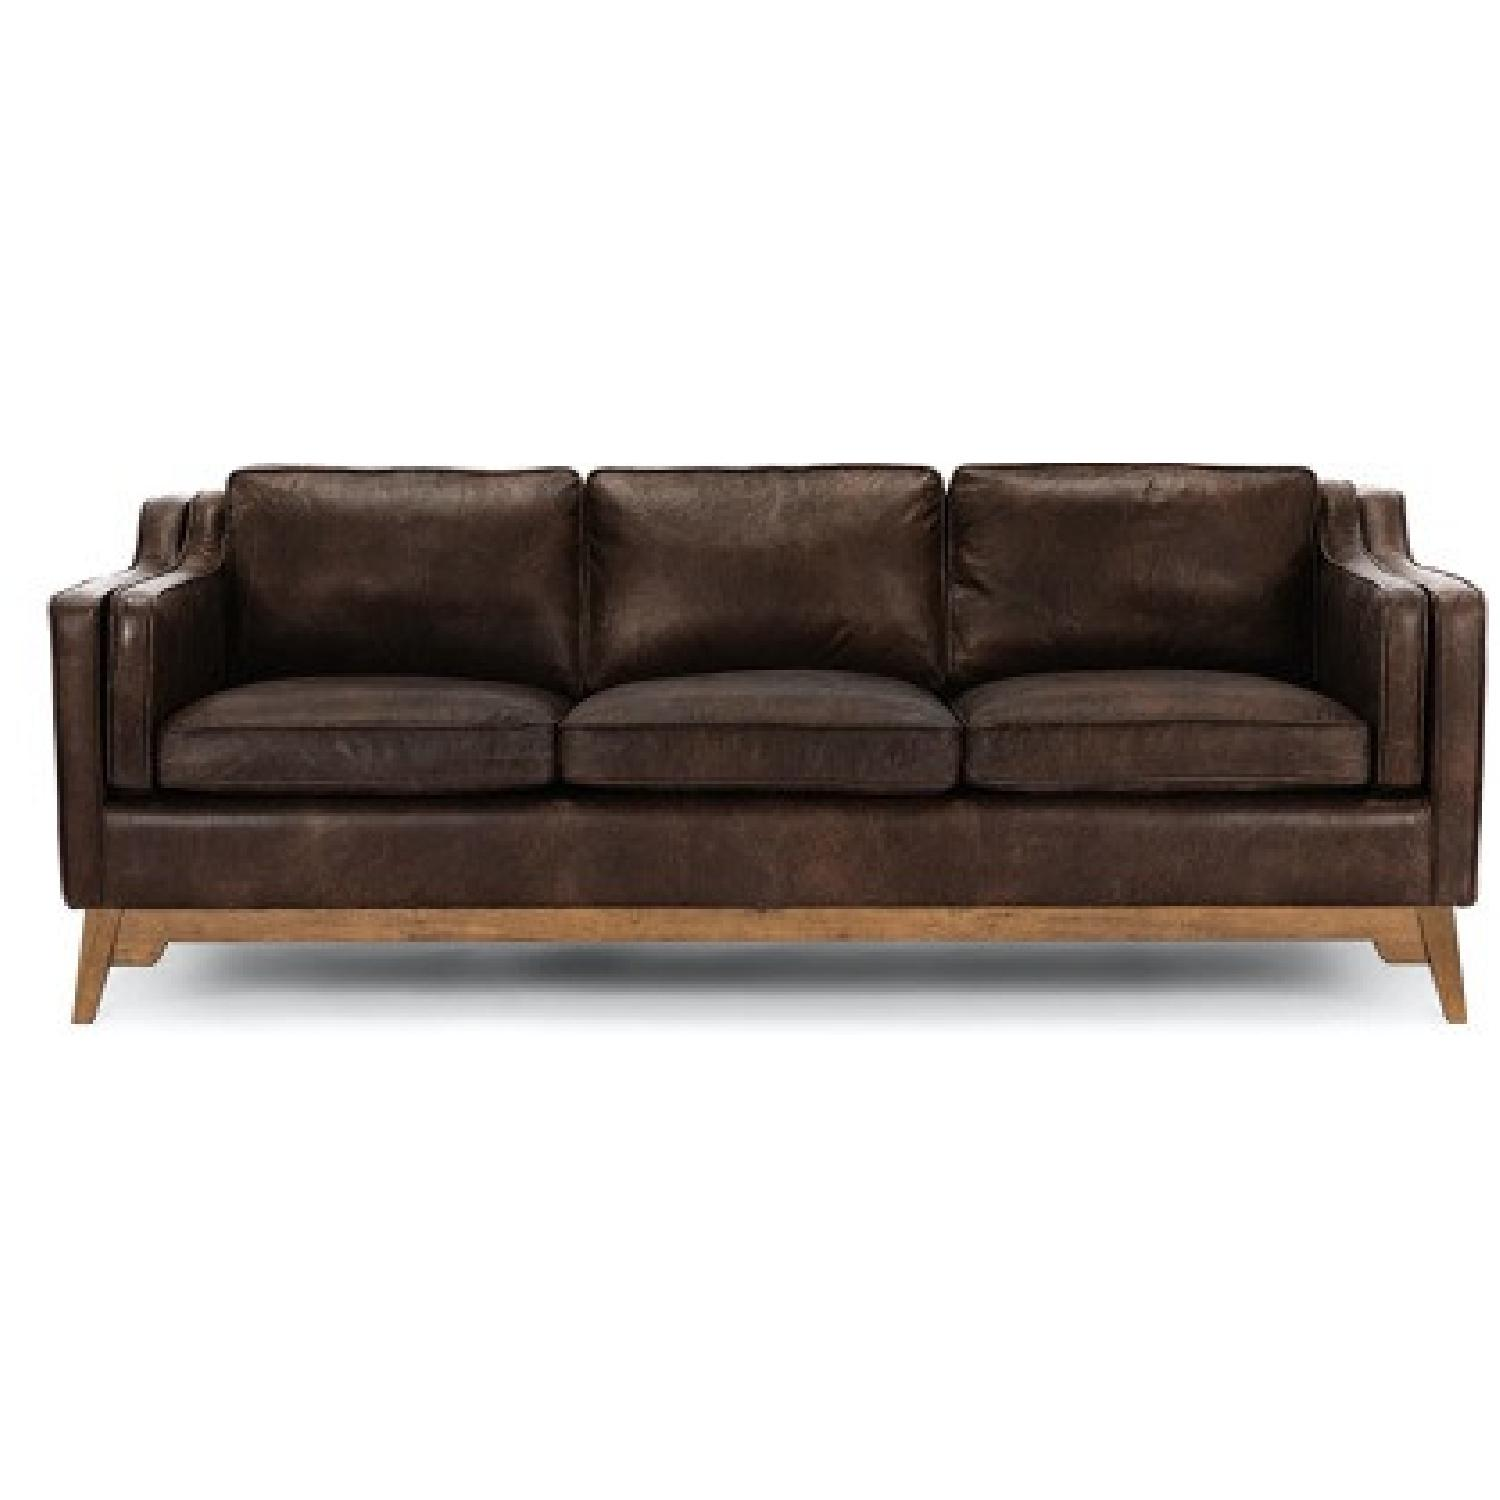 Article Worthington Brown Leather 3Person Couch - image-5